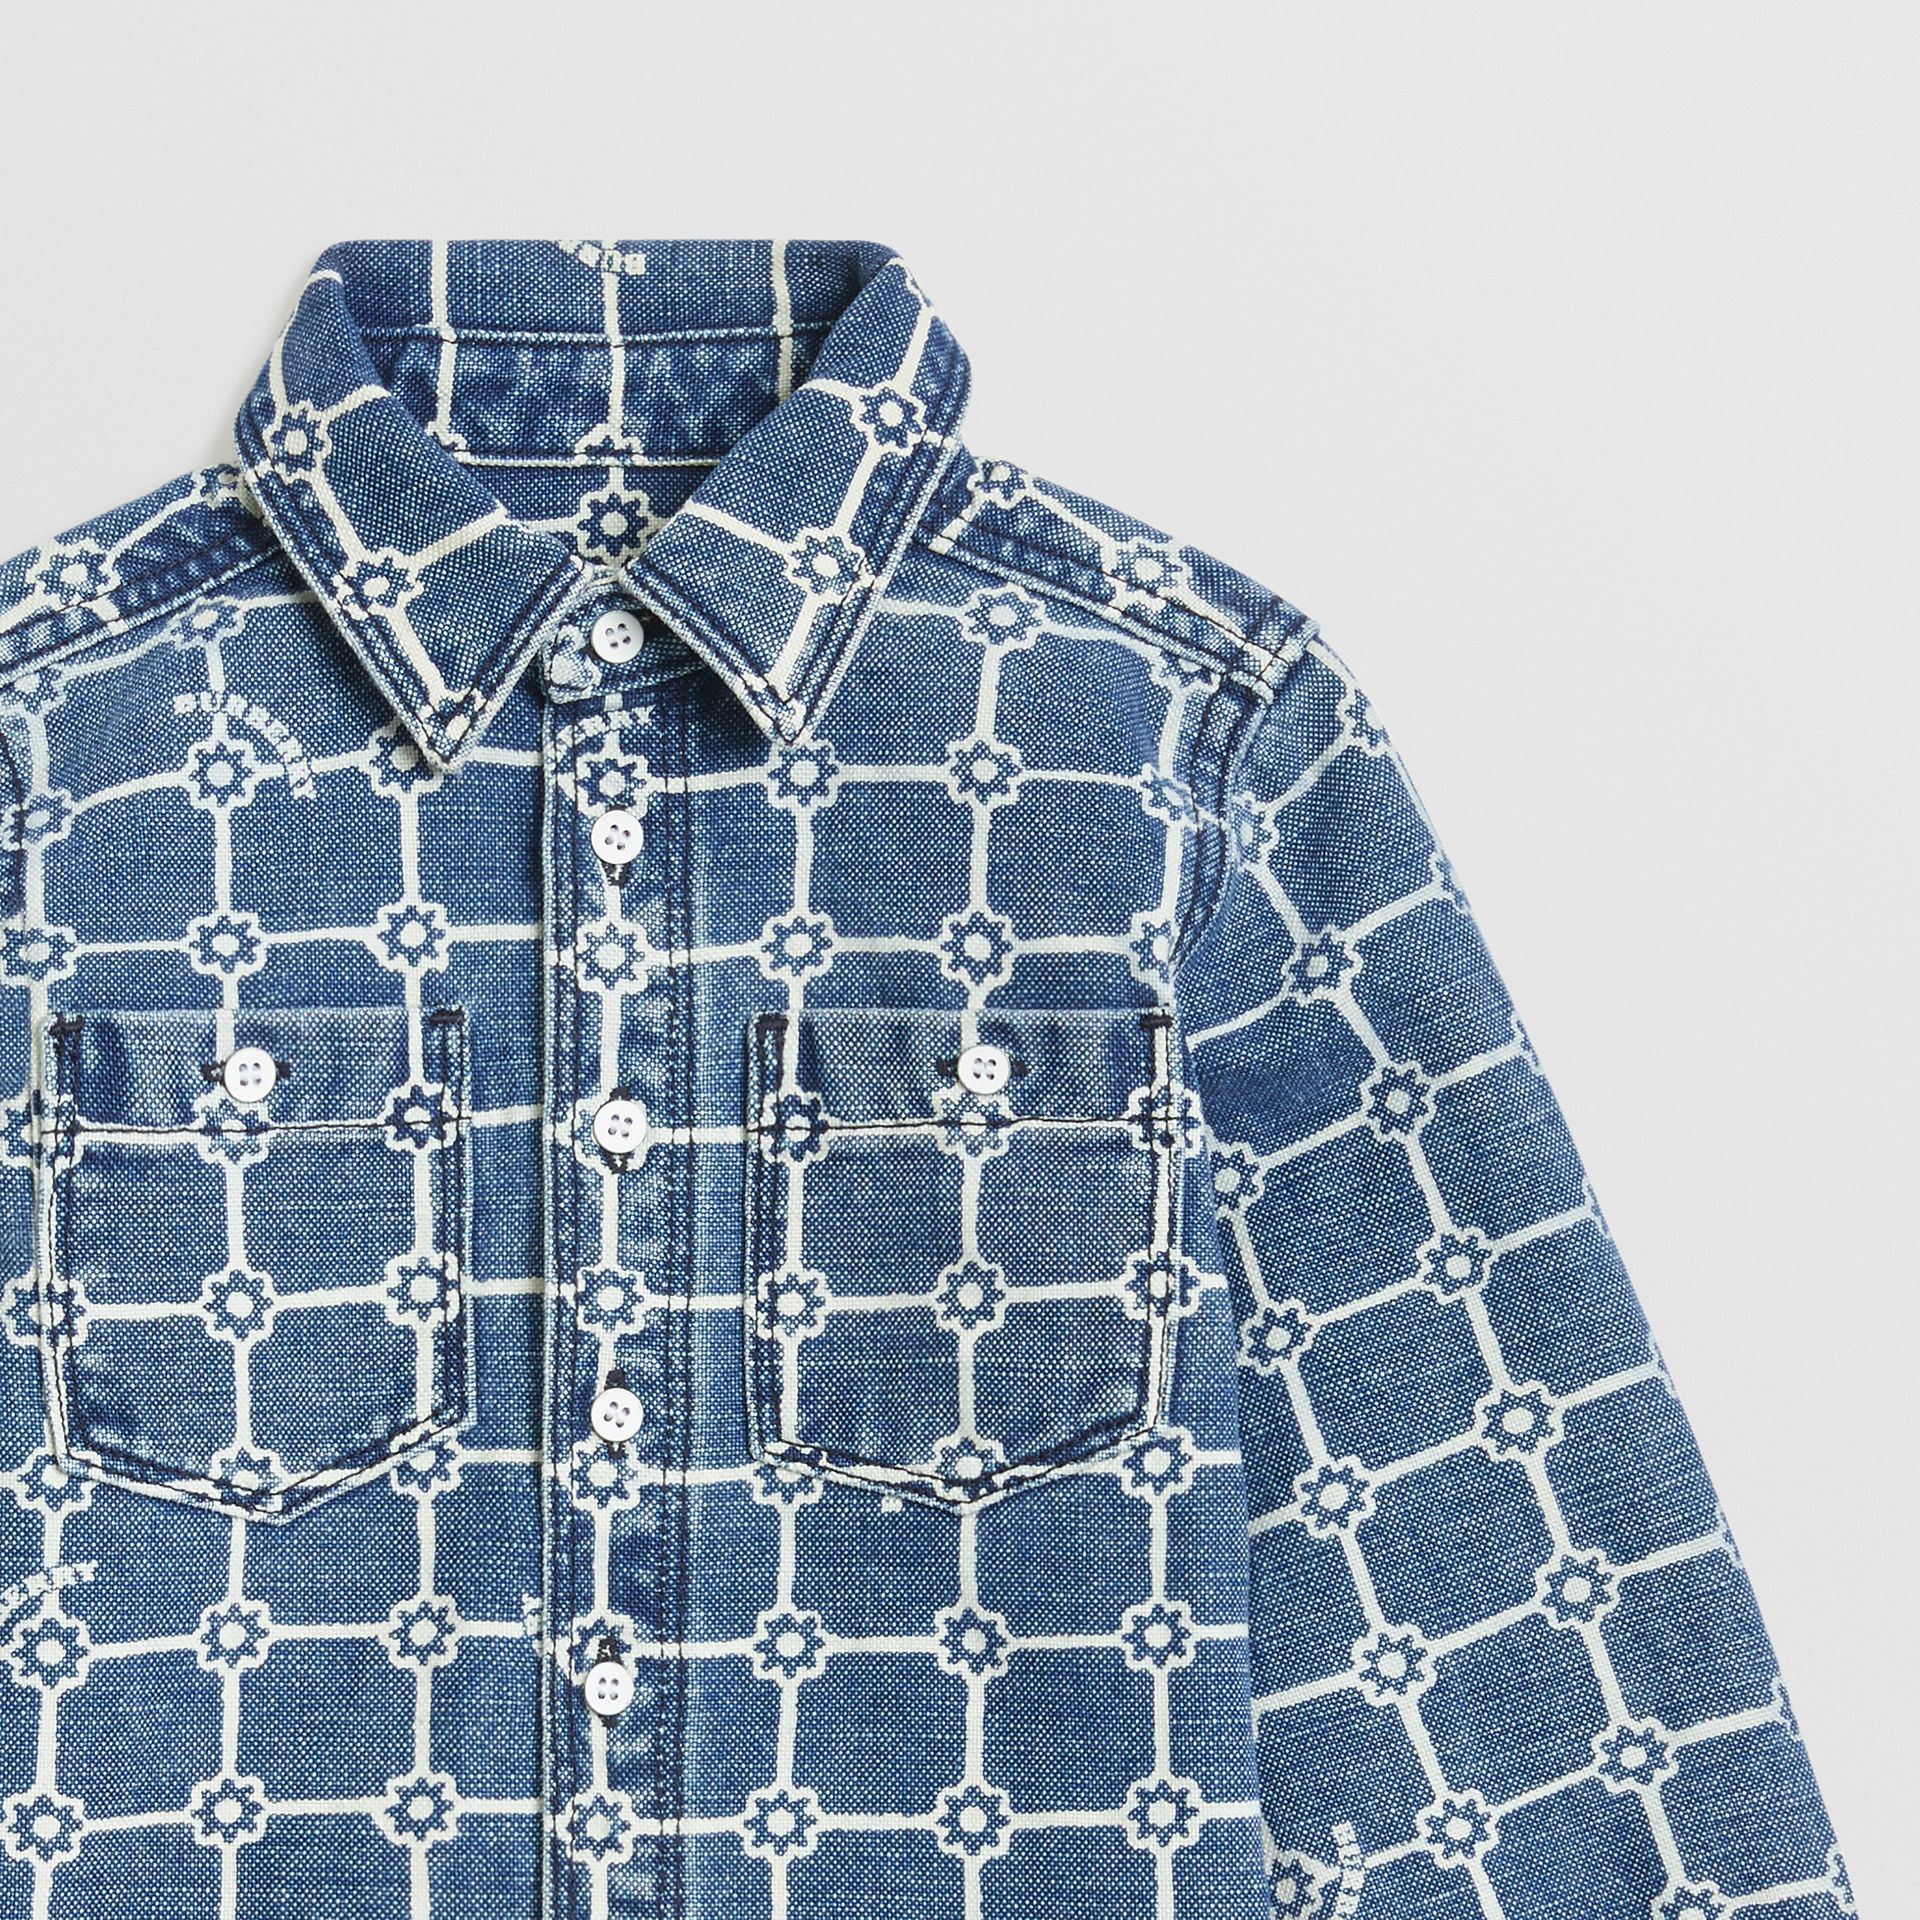 Flower Print Cotton Linen Shirt in Indigo | Burberry - gallery image 4